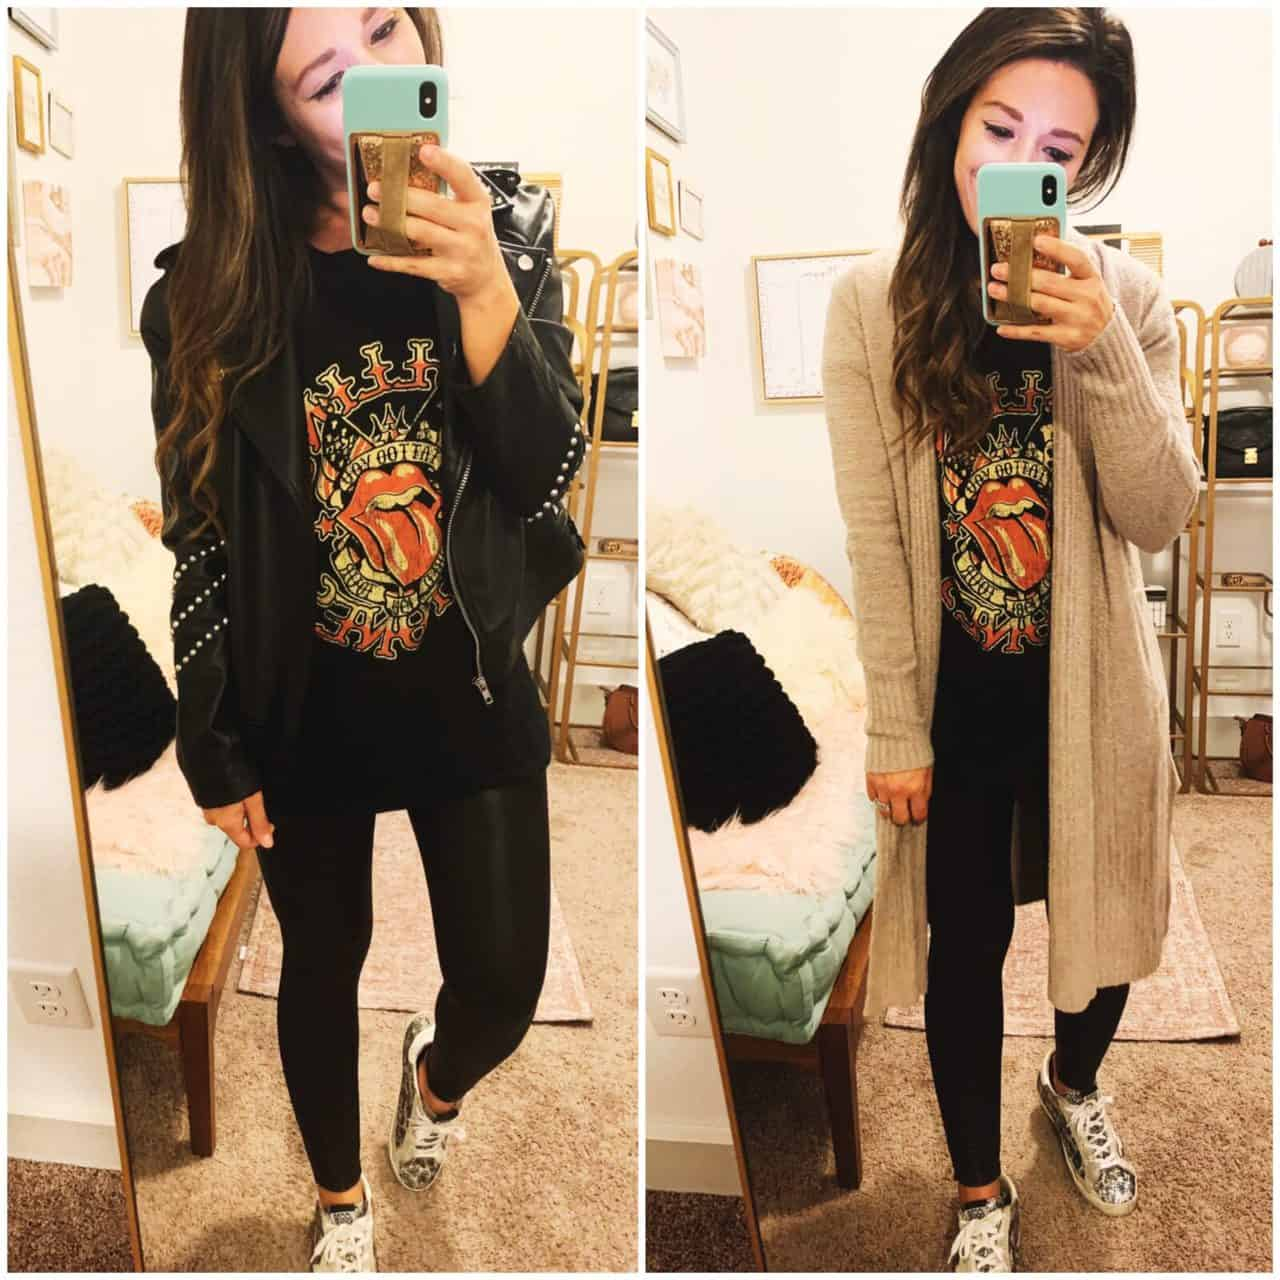 graphic tee paired with spanx leggings with long cardigan and leather jacket